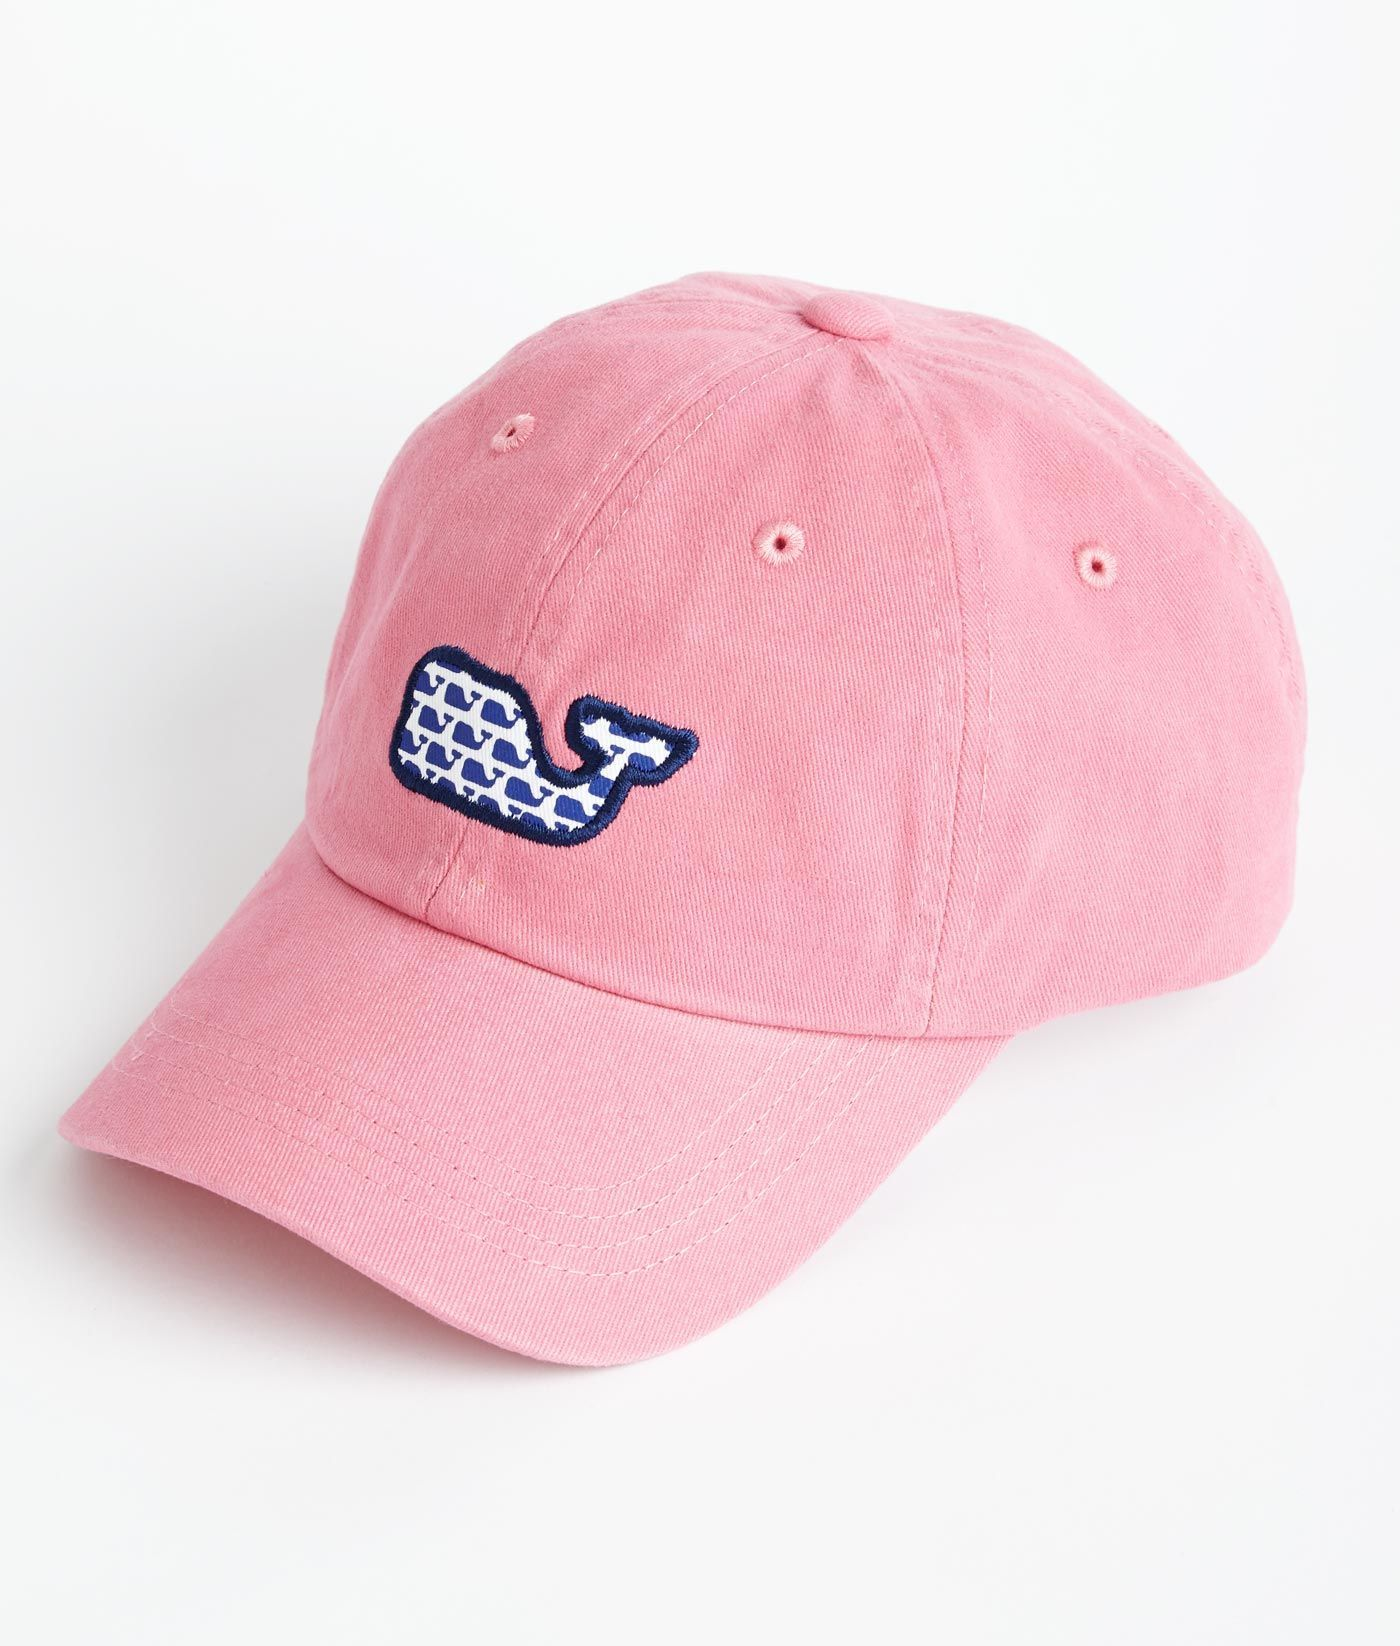 b9fabc5ced0e7 COME ON! Womens Hats  Vineyard Whale Baseball Cap – Vineyard Vines ...